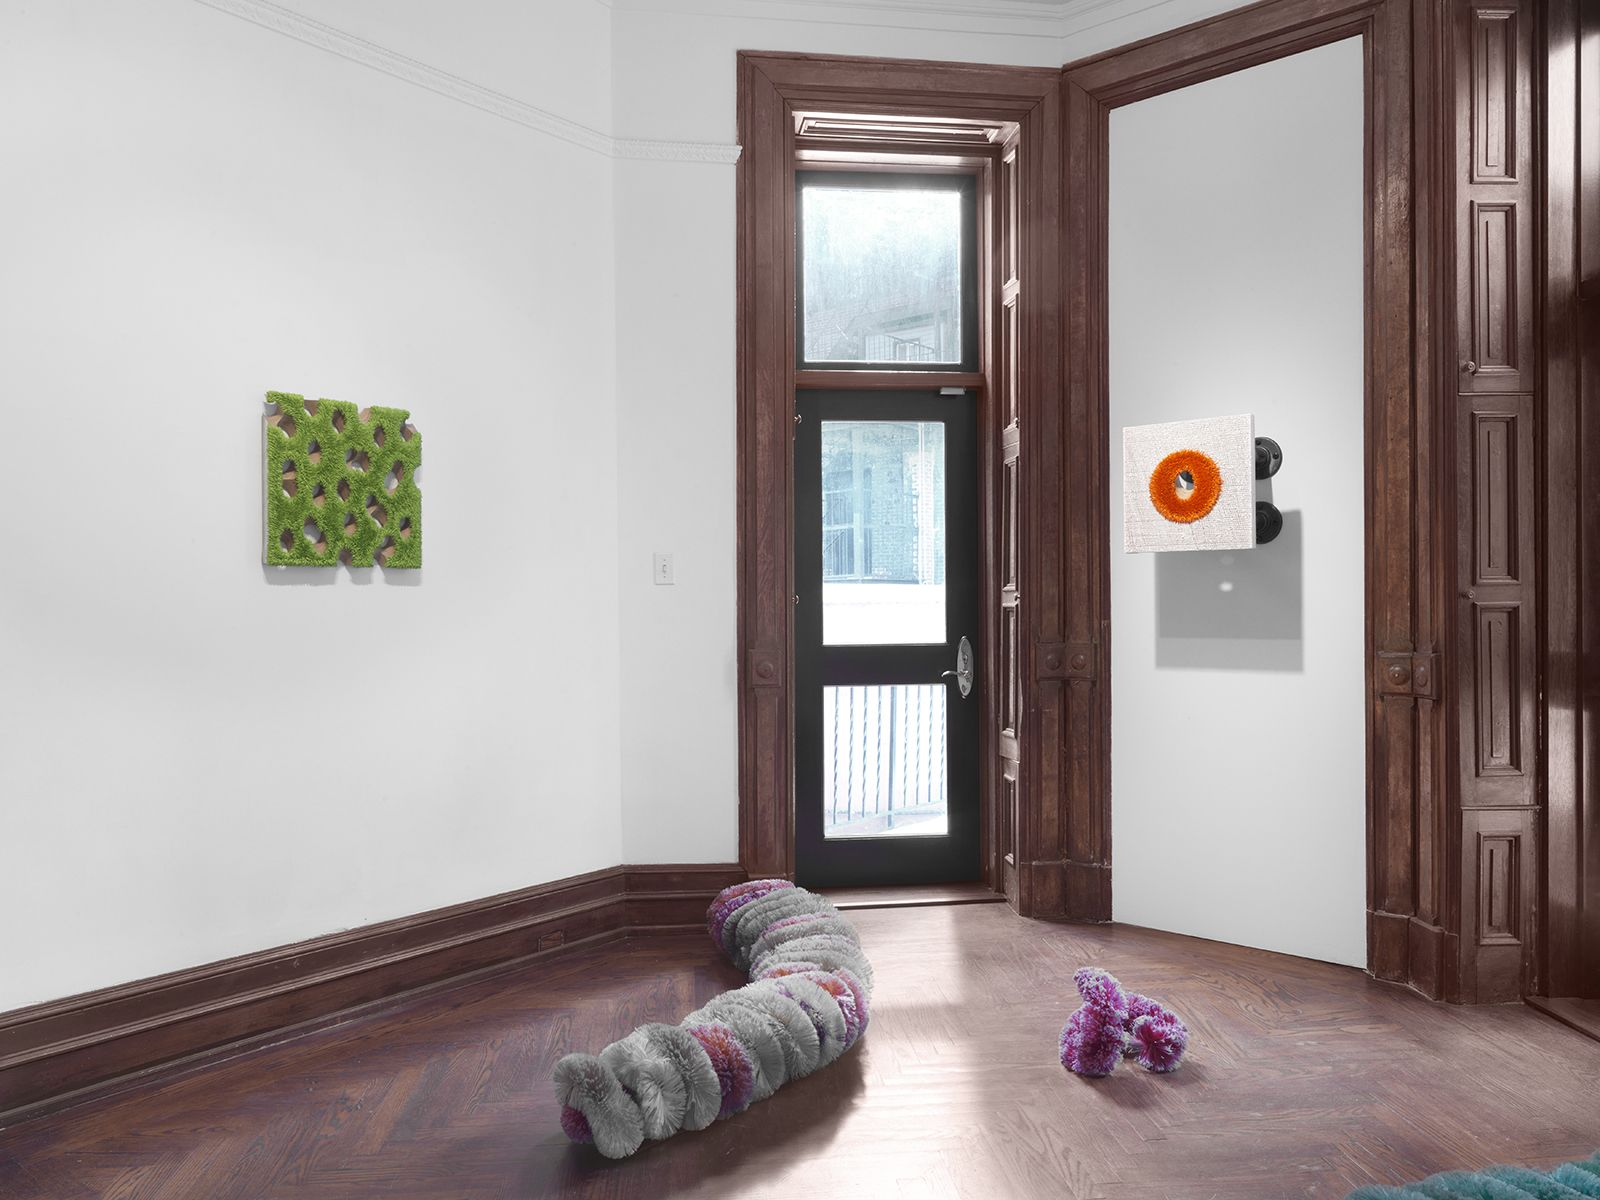 Floss (Installation View), 118 East 64th Street, 2016